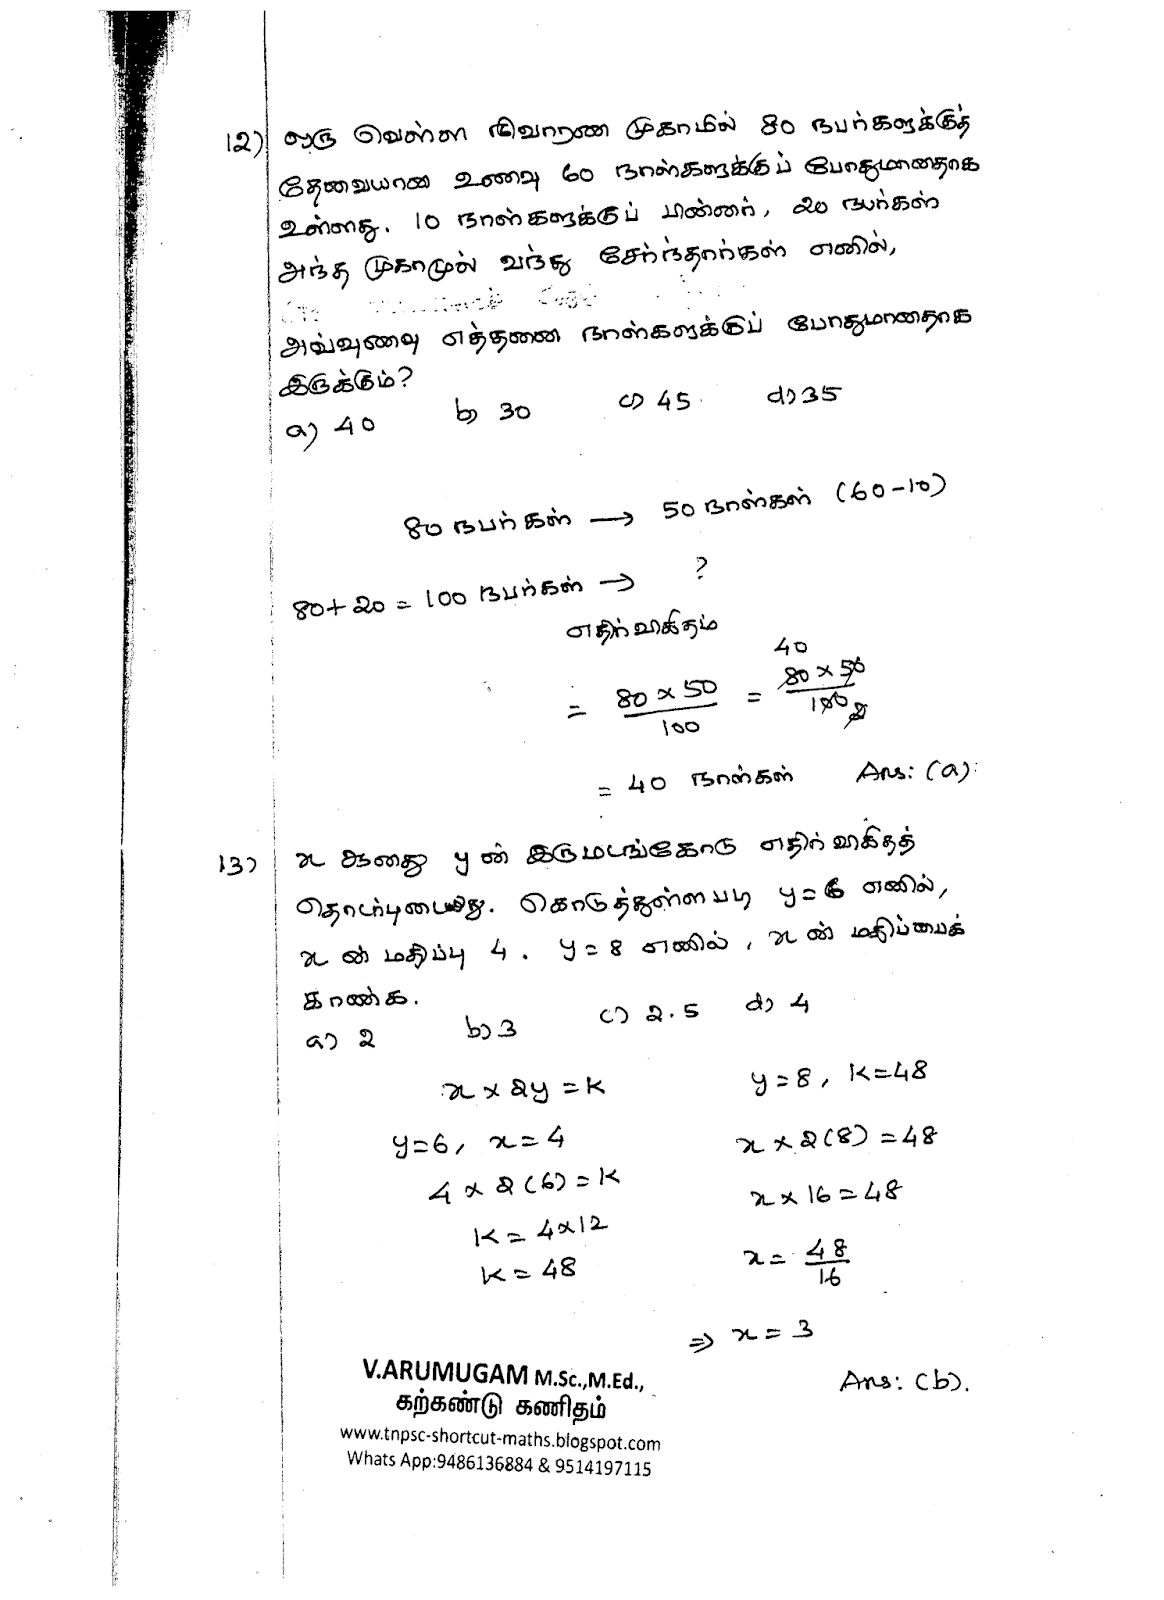 2019 - NEW SYLLABUS - VII STD - I TERM - UNIT-4: DIRECT & INVERSE PROPORTIONS - PAGE - 22/29